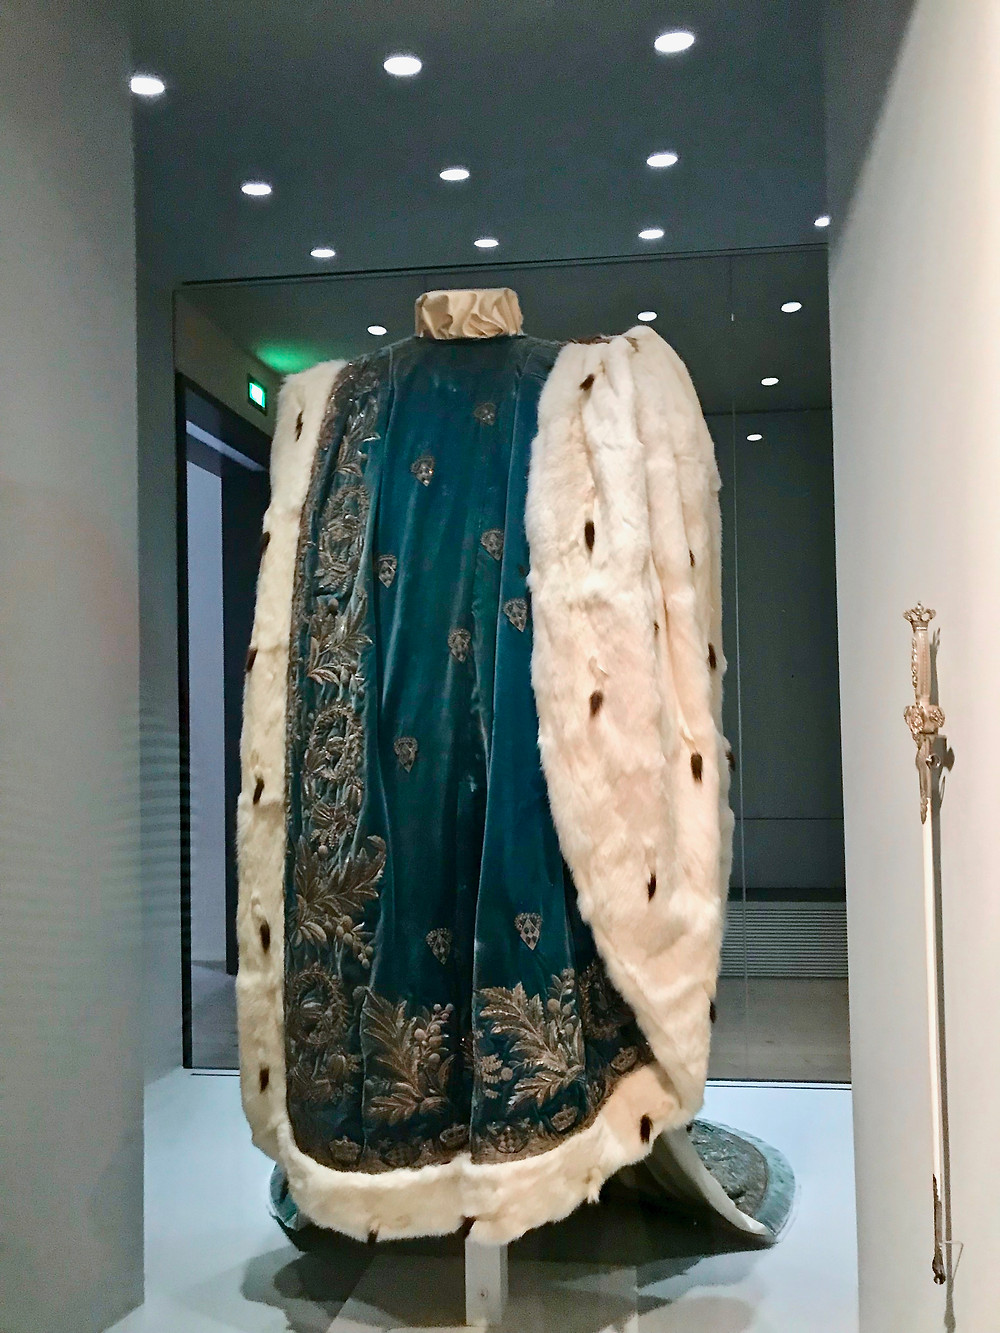 Wittlesbach coronation robes in the Museum of the Bavarian Kings